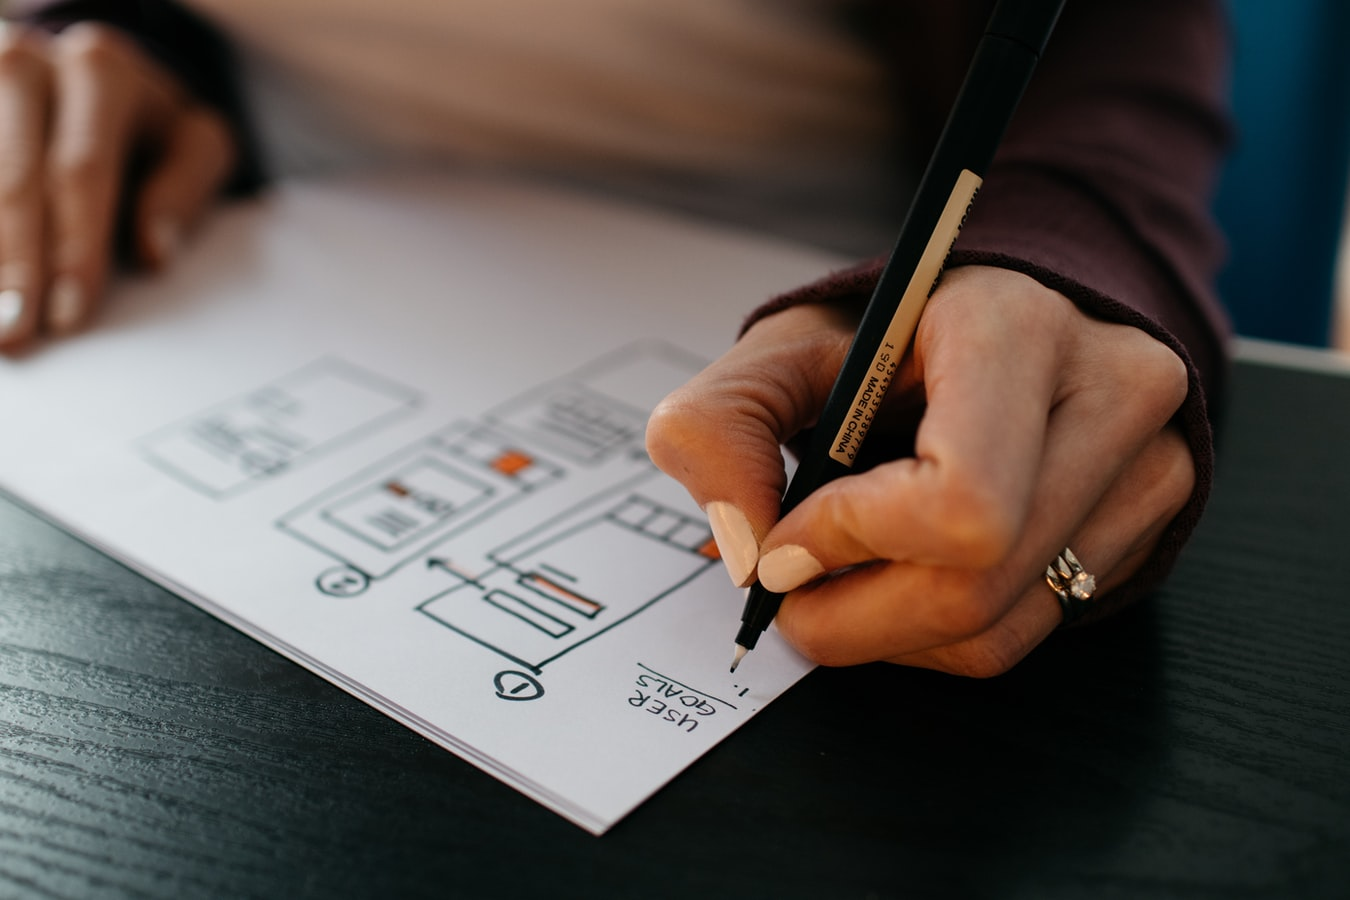 Hand holding a pen and drawing user journey diagrams